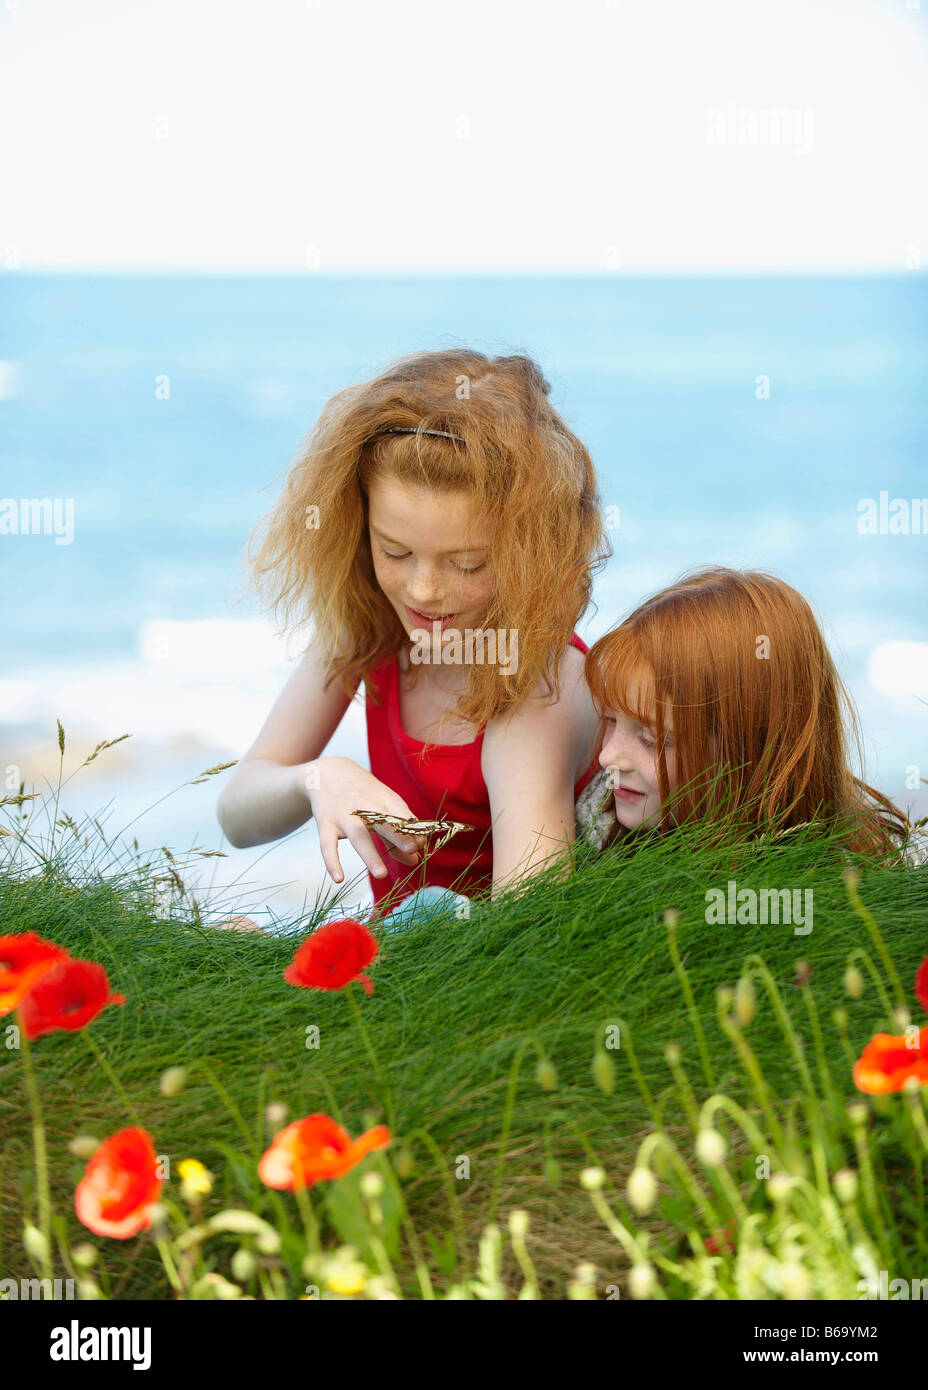 2 girls watching butterfly - Stock Image